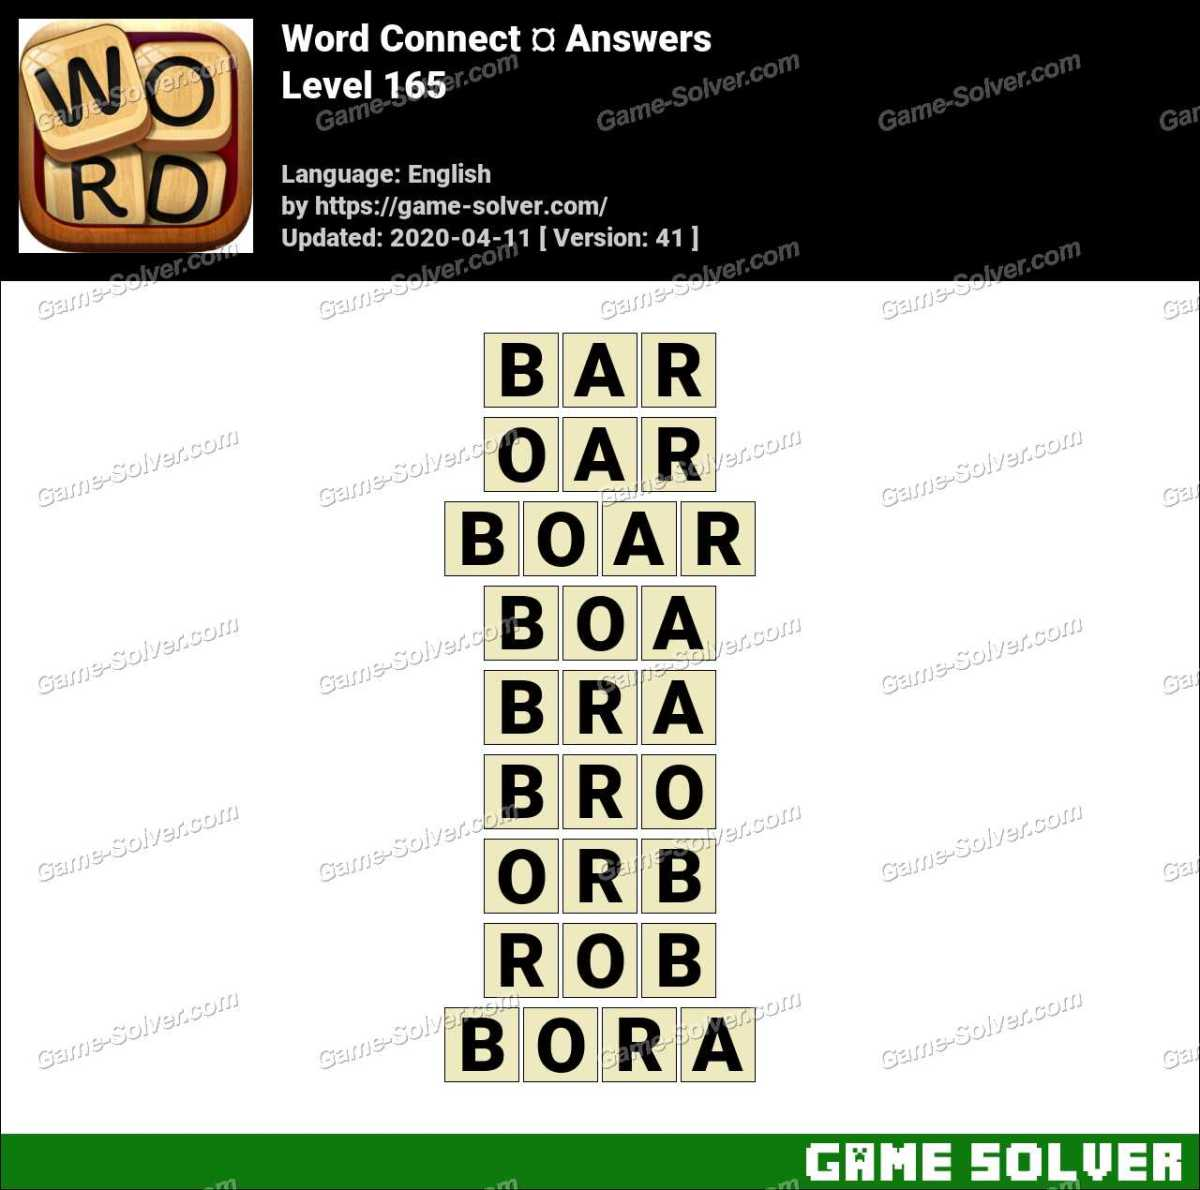 Word Connect Level 165 Answers